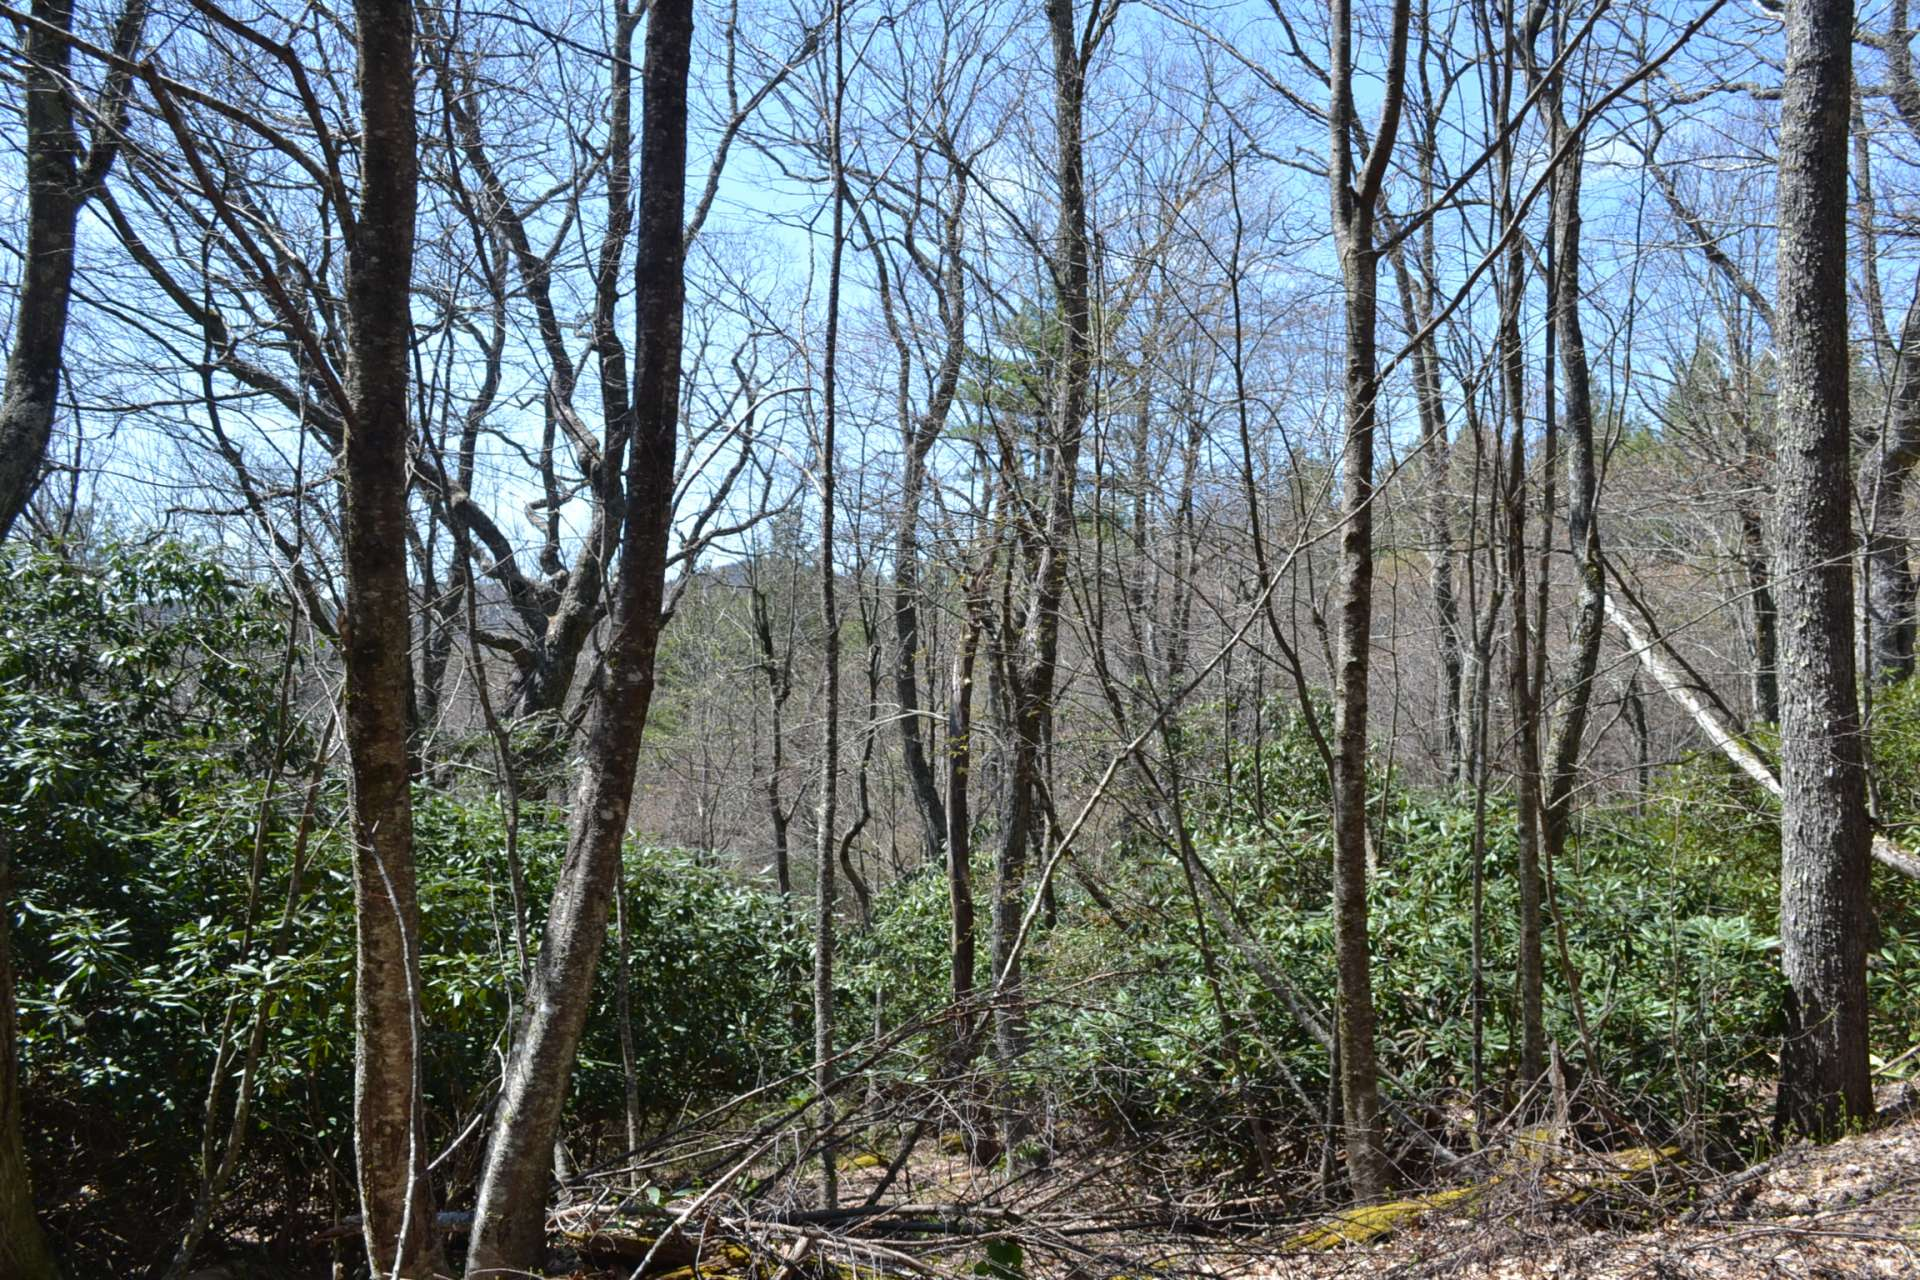 A hunter's paradise, this tract offers vast woodlands with a diverse mixture of hardwoods, conifers and native mountain foliage.  Plenty of opportunities to hike, hunt or just explore on your own private property.